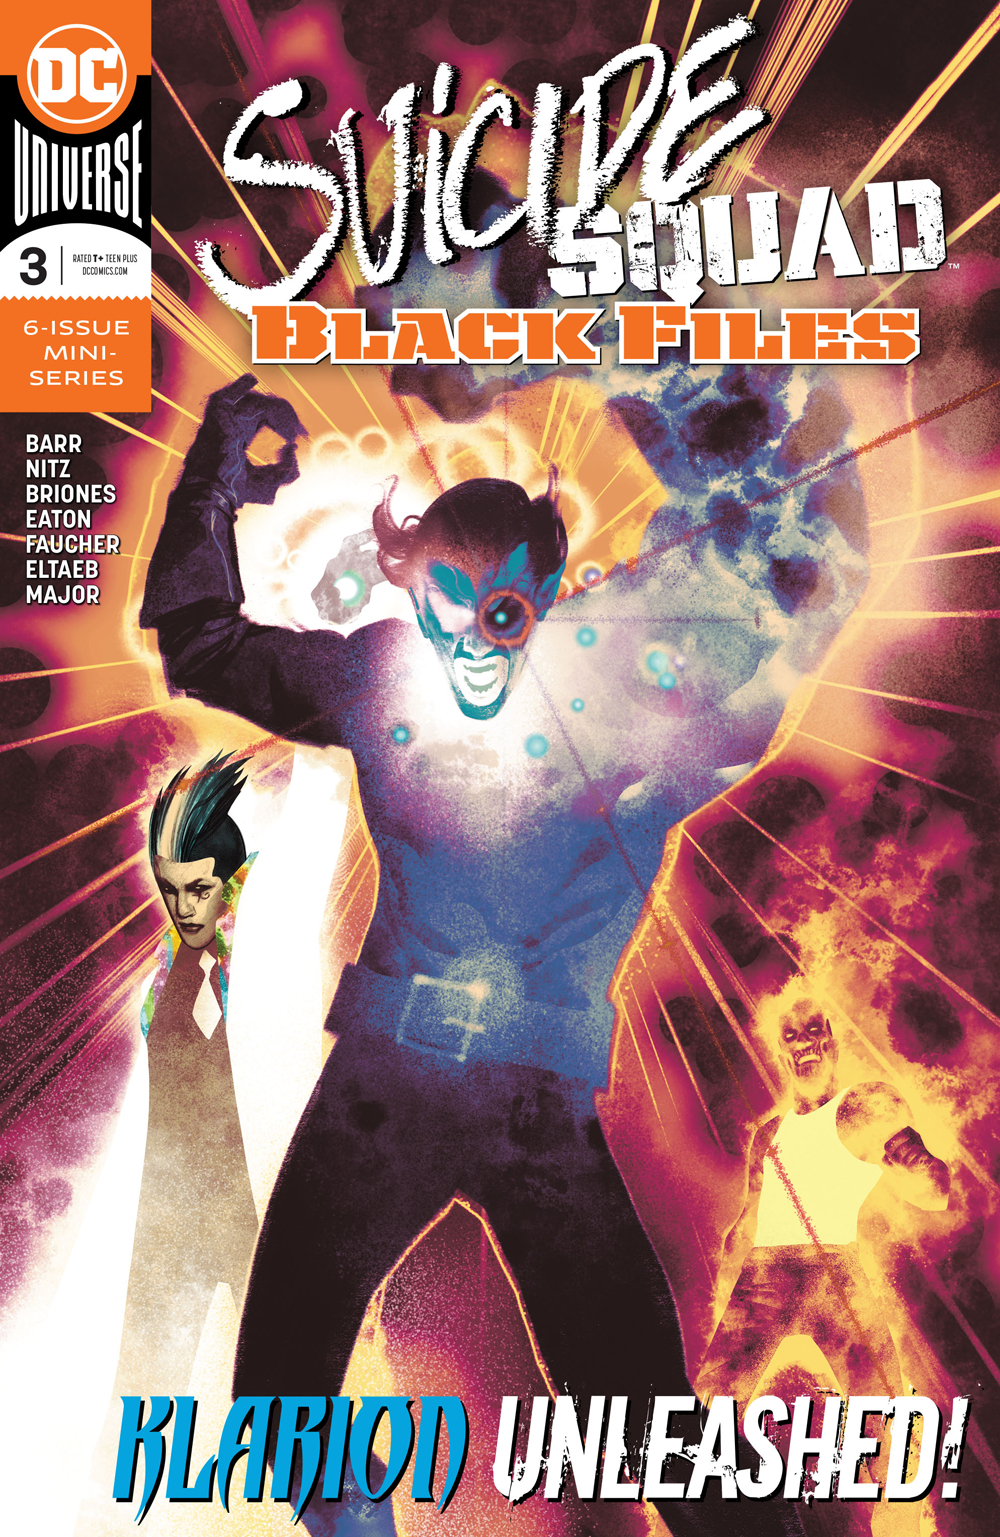 SUICIDE SQUAD BLACK FILES #3 (OF 6) (RES)